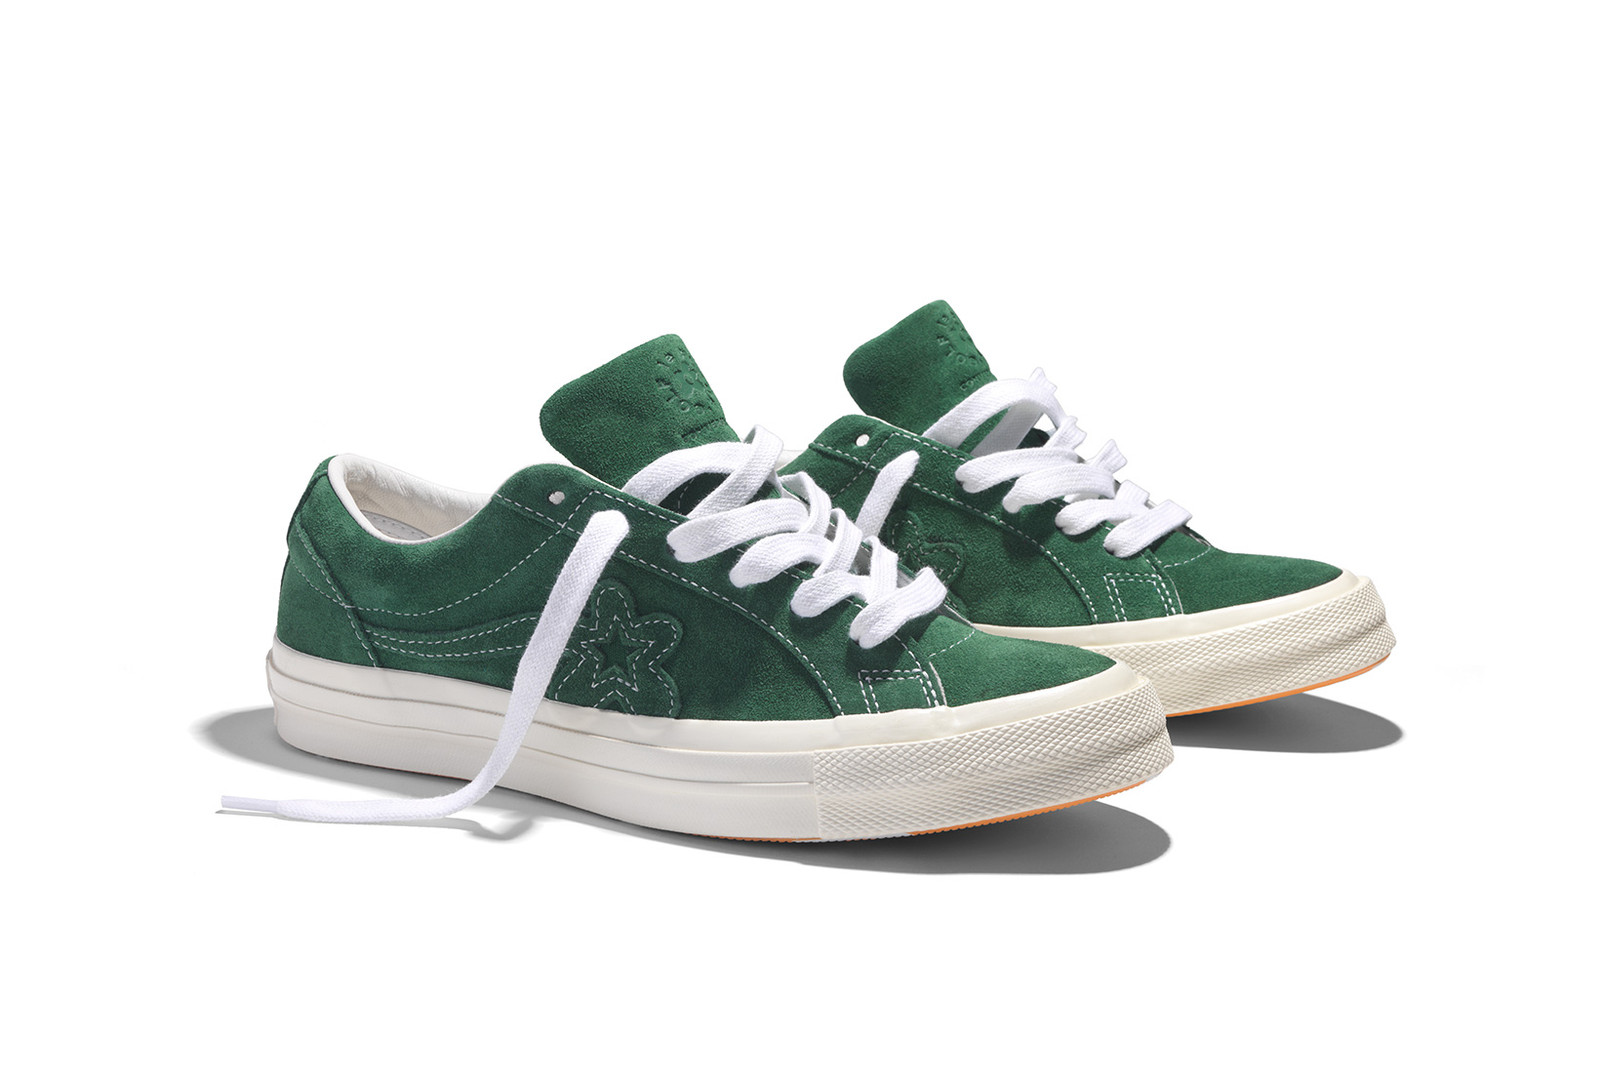 Converse Golf Le Fleur Mono Collection Tyler the Creator footwear 2018 april release date